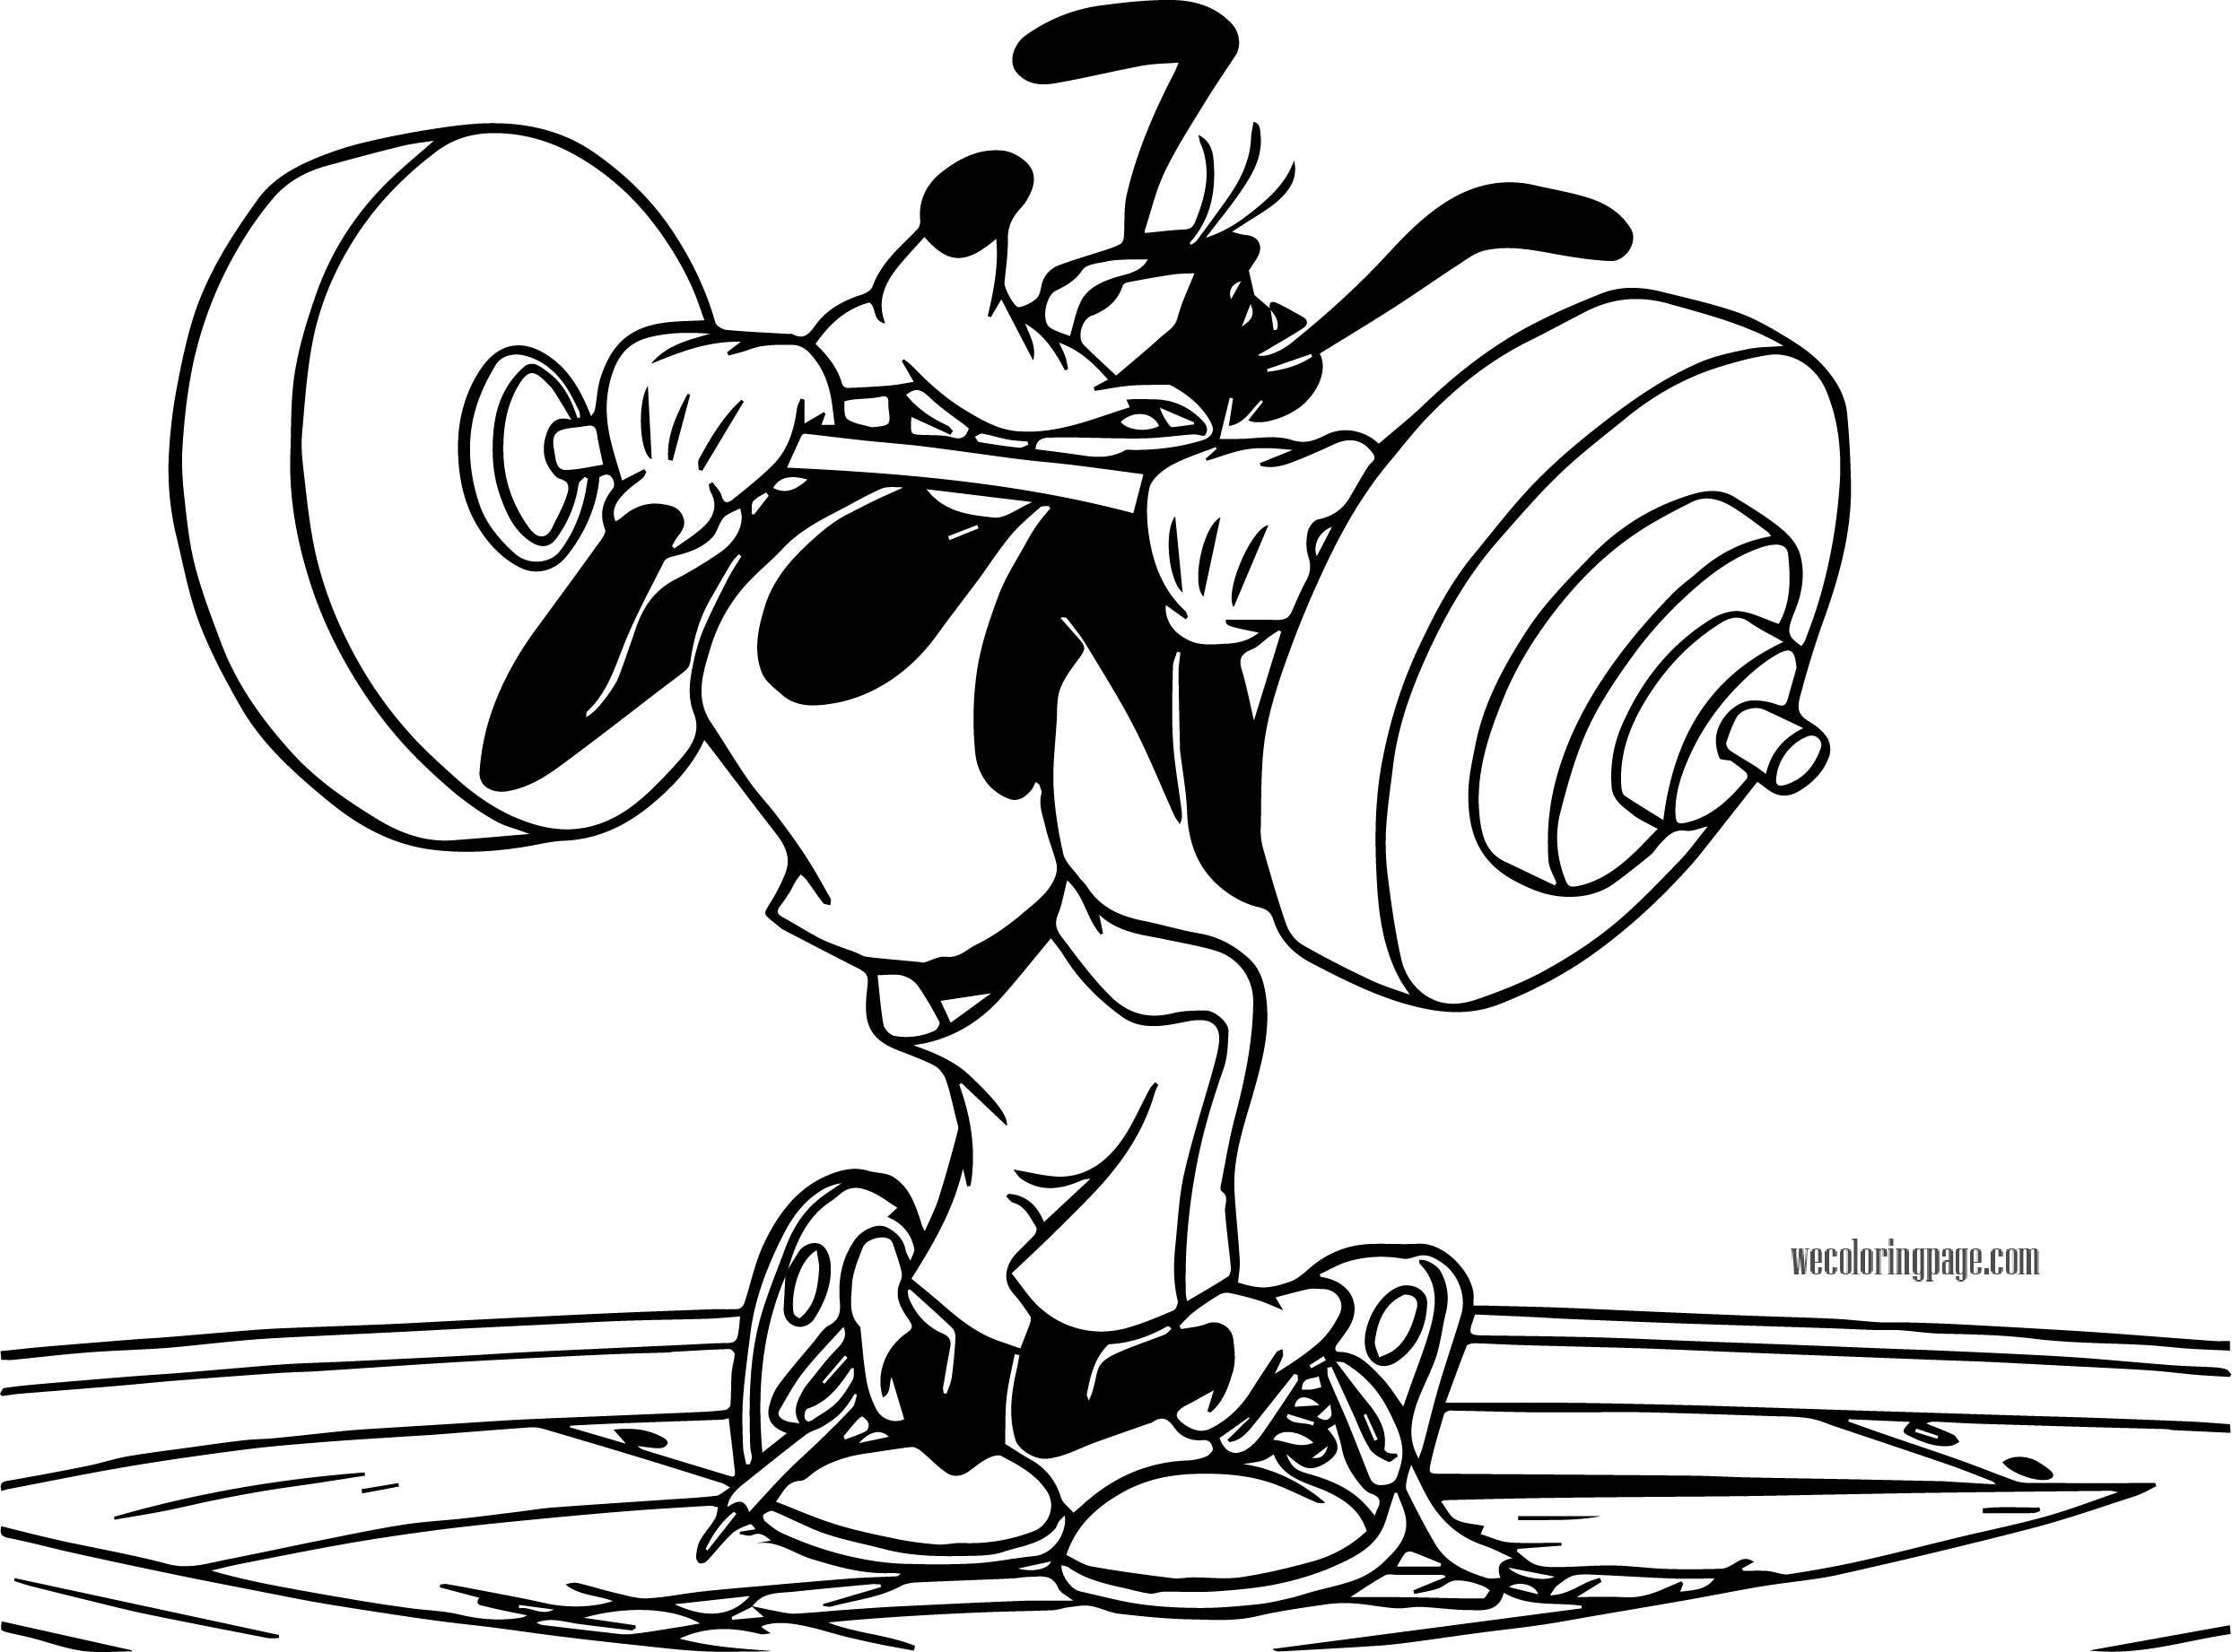 Goofy Lifting Weight Coloring Page